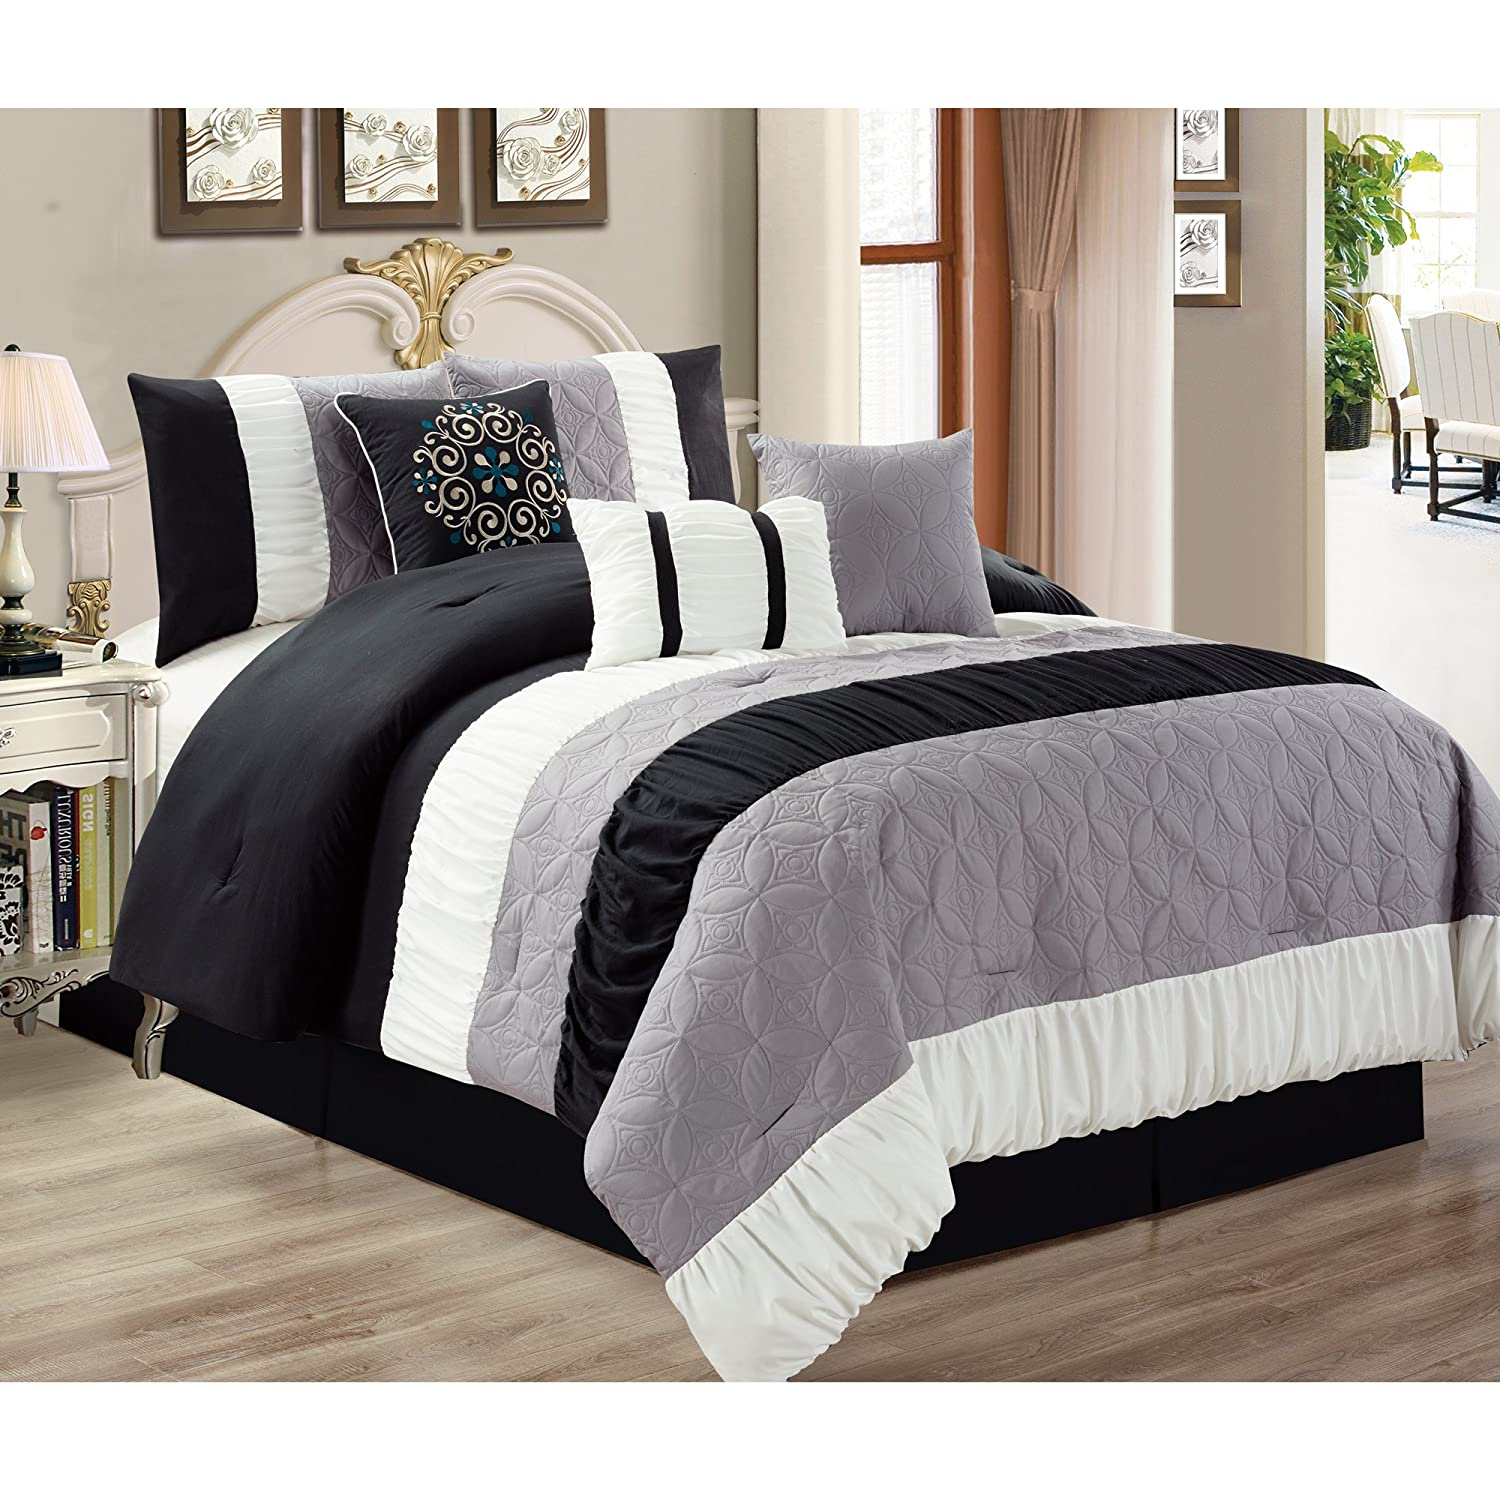 Safdie & Co. Collection Canterbury 7 Piece Comforter Set, Full/Queen 60507.7Q.15